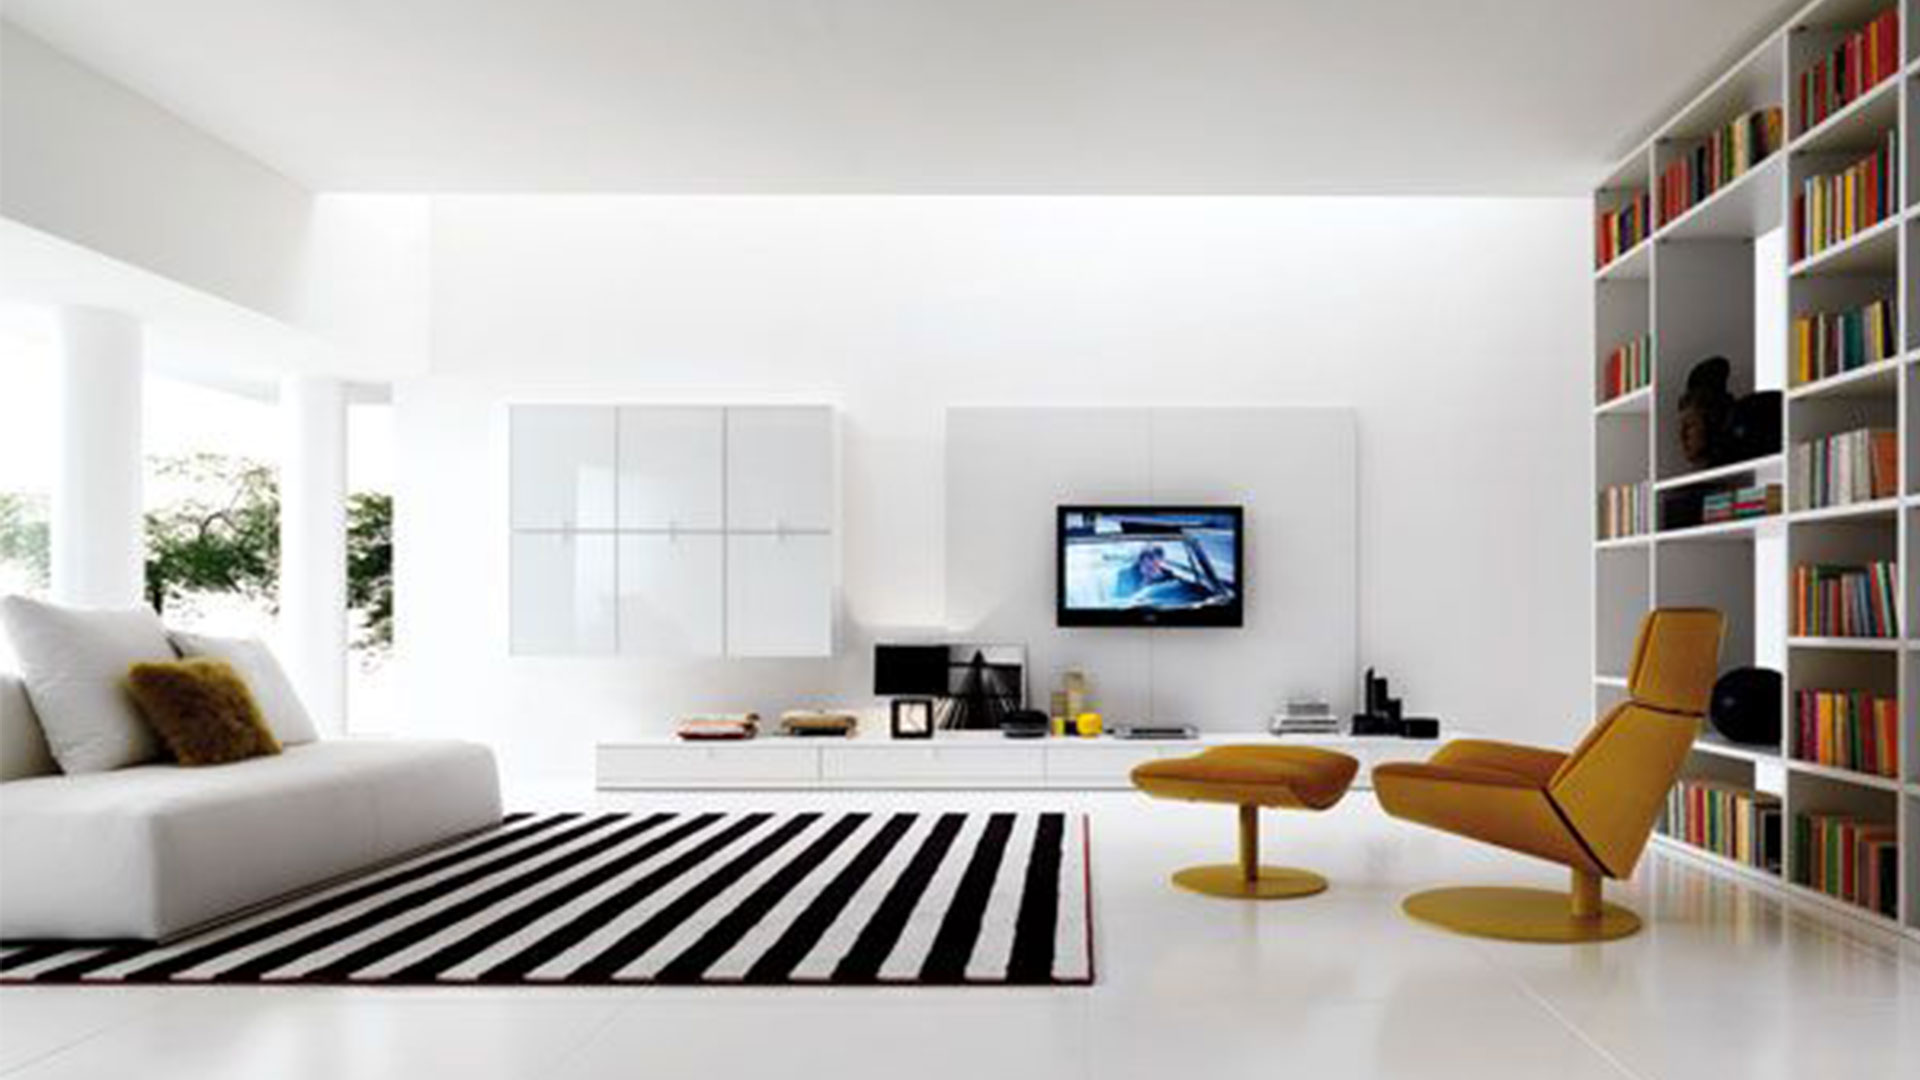 Modern-Living-Room-Interior-Design-2